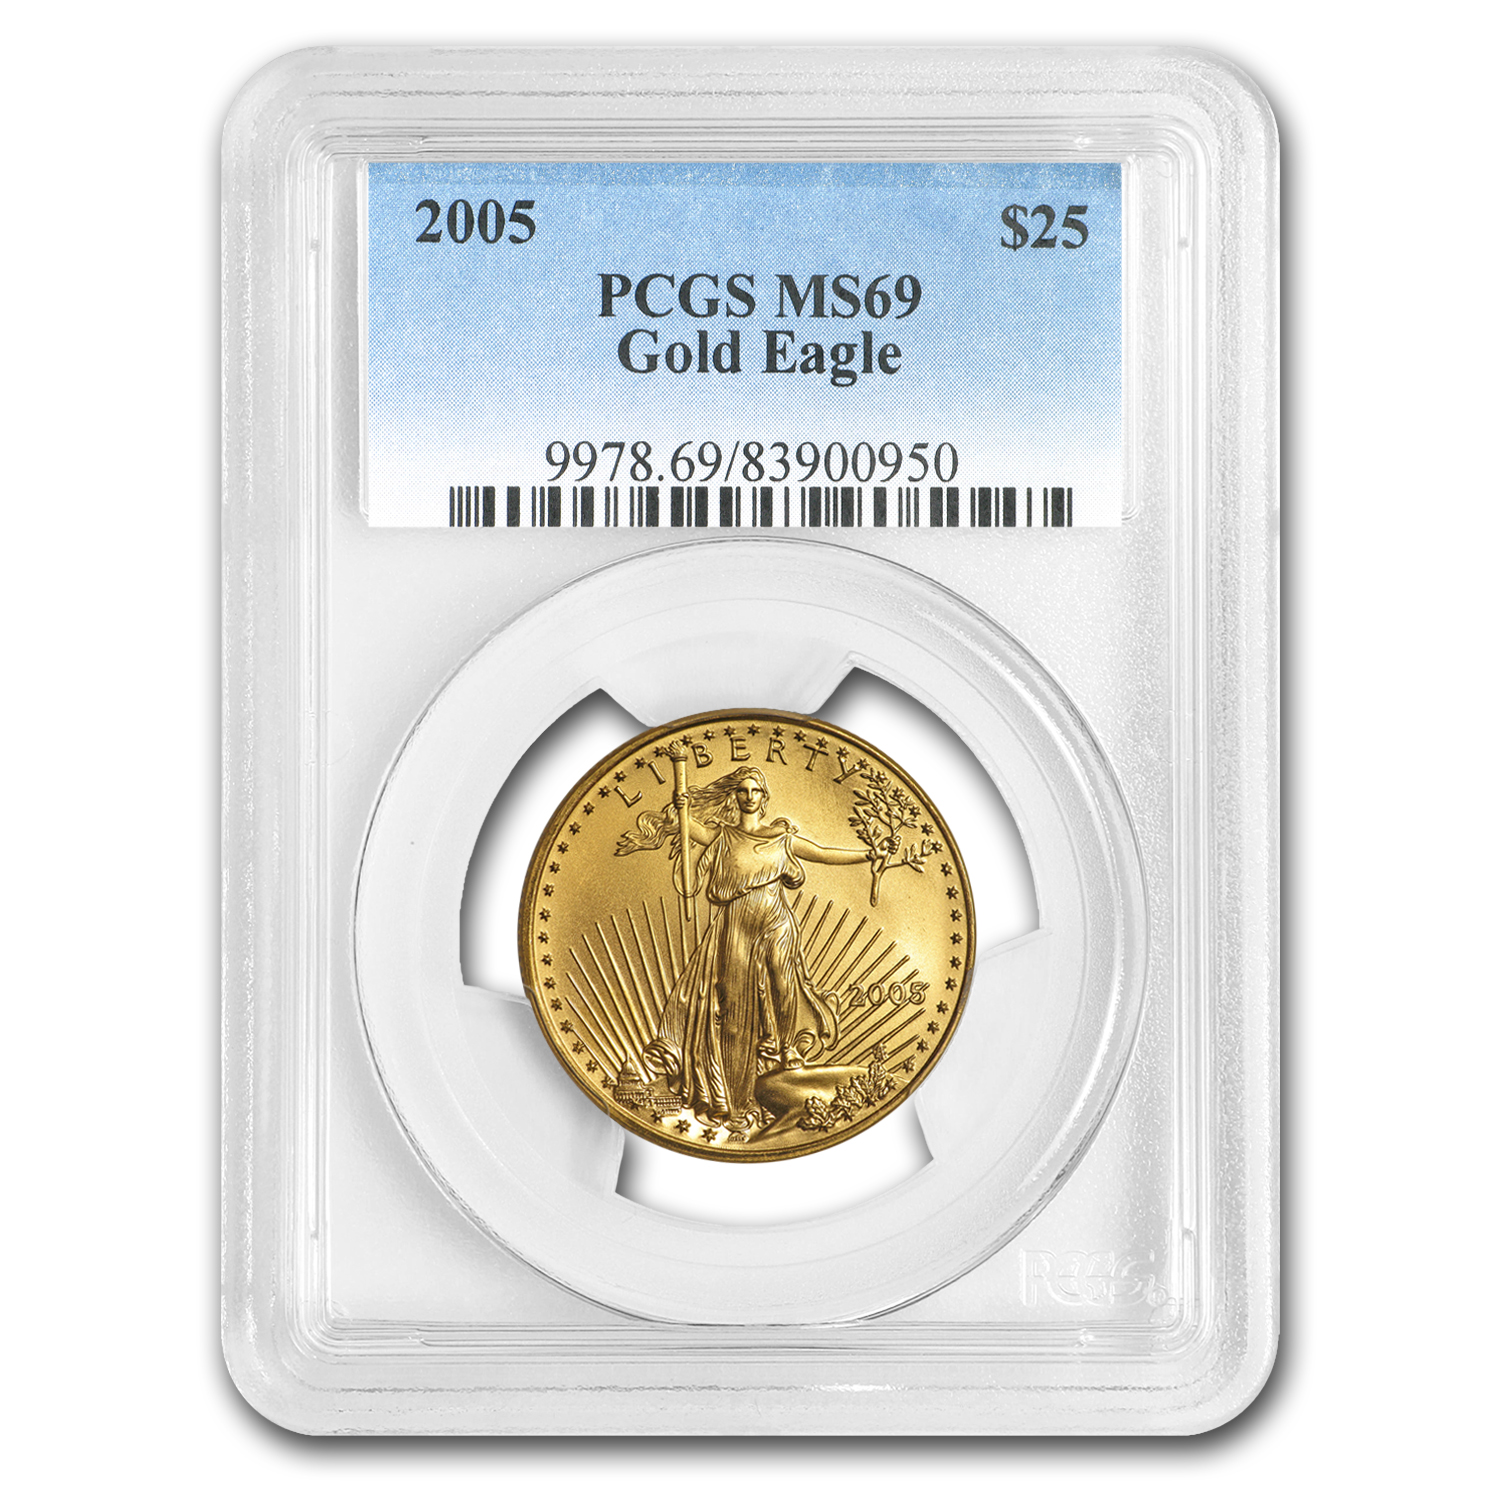 2005 1/2 oz Gold American Eagle MS-69 PCGS